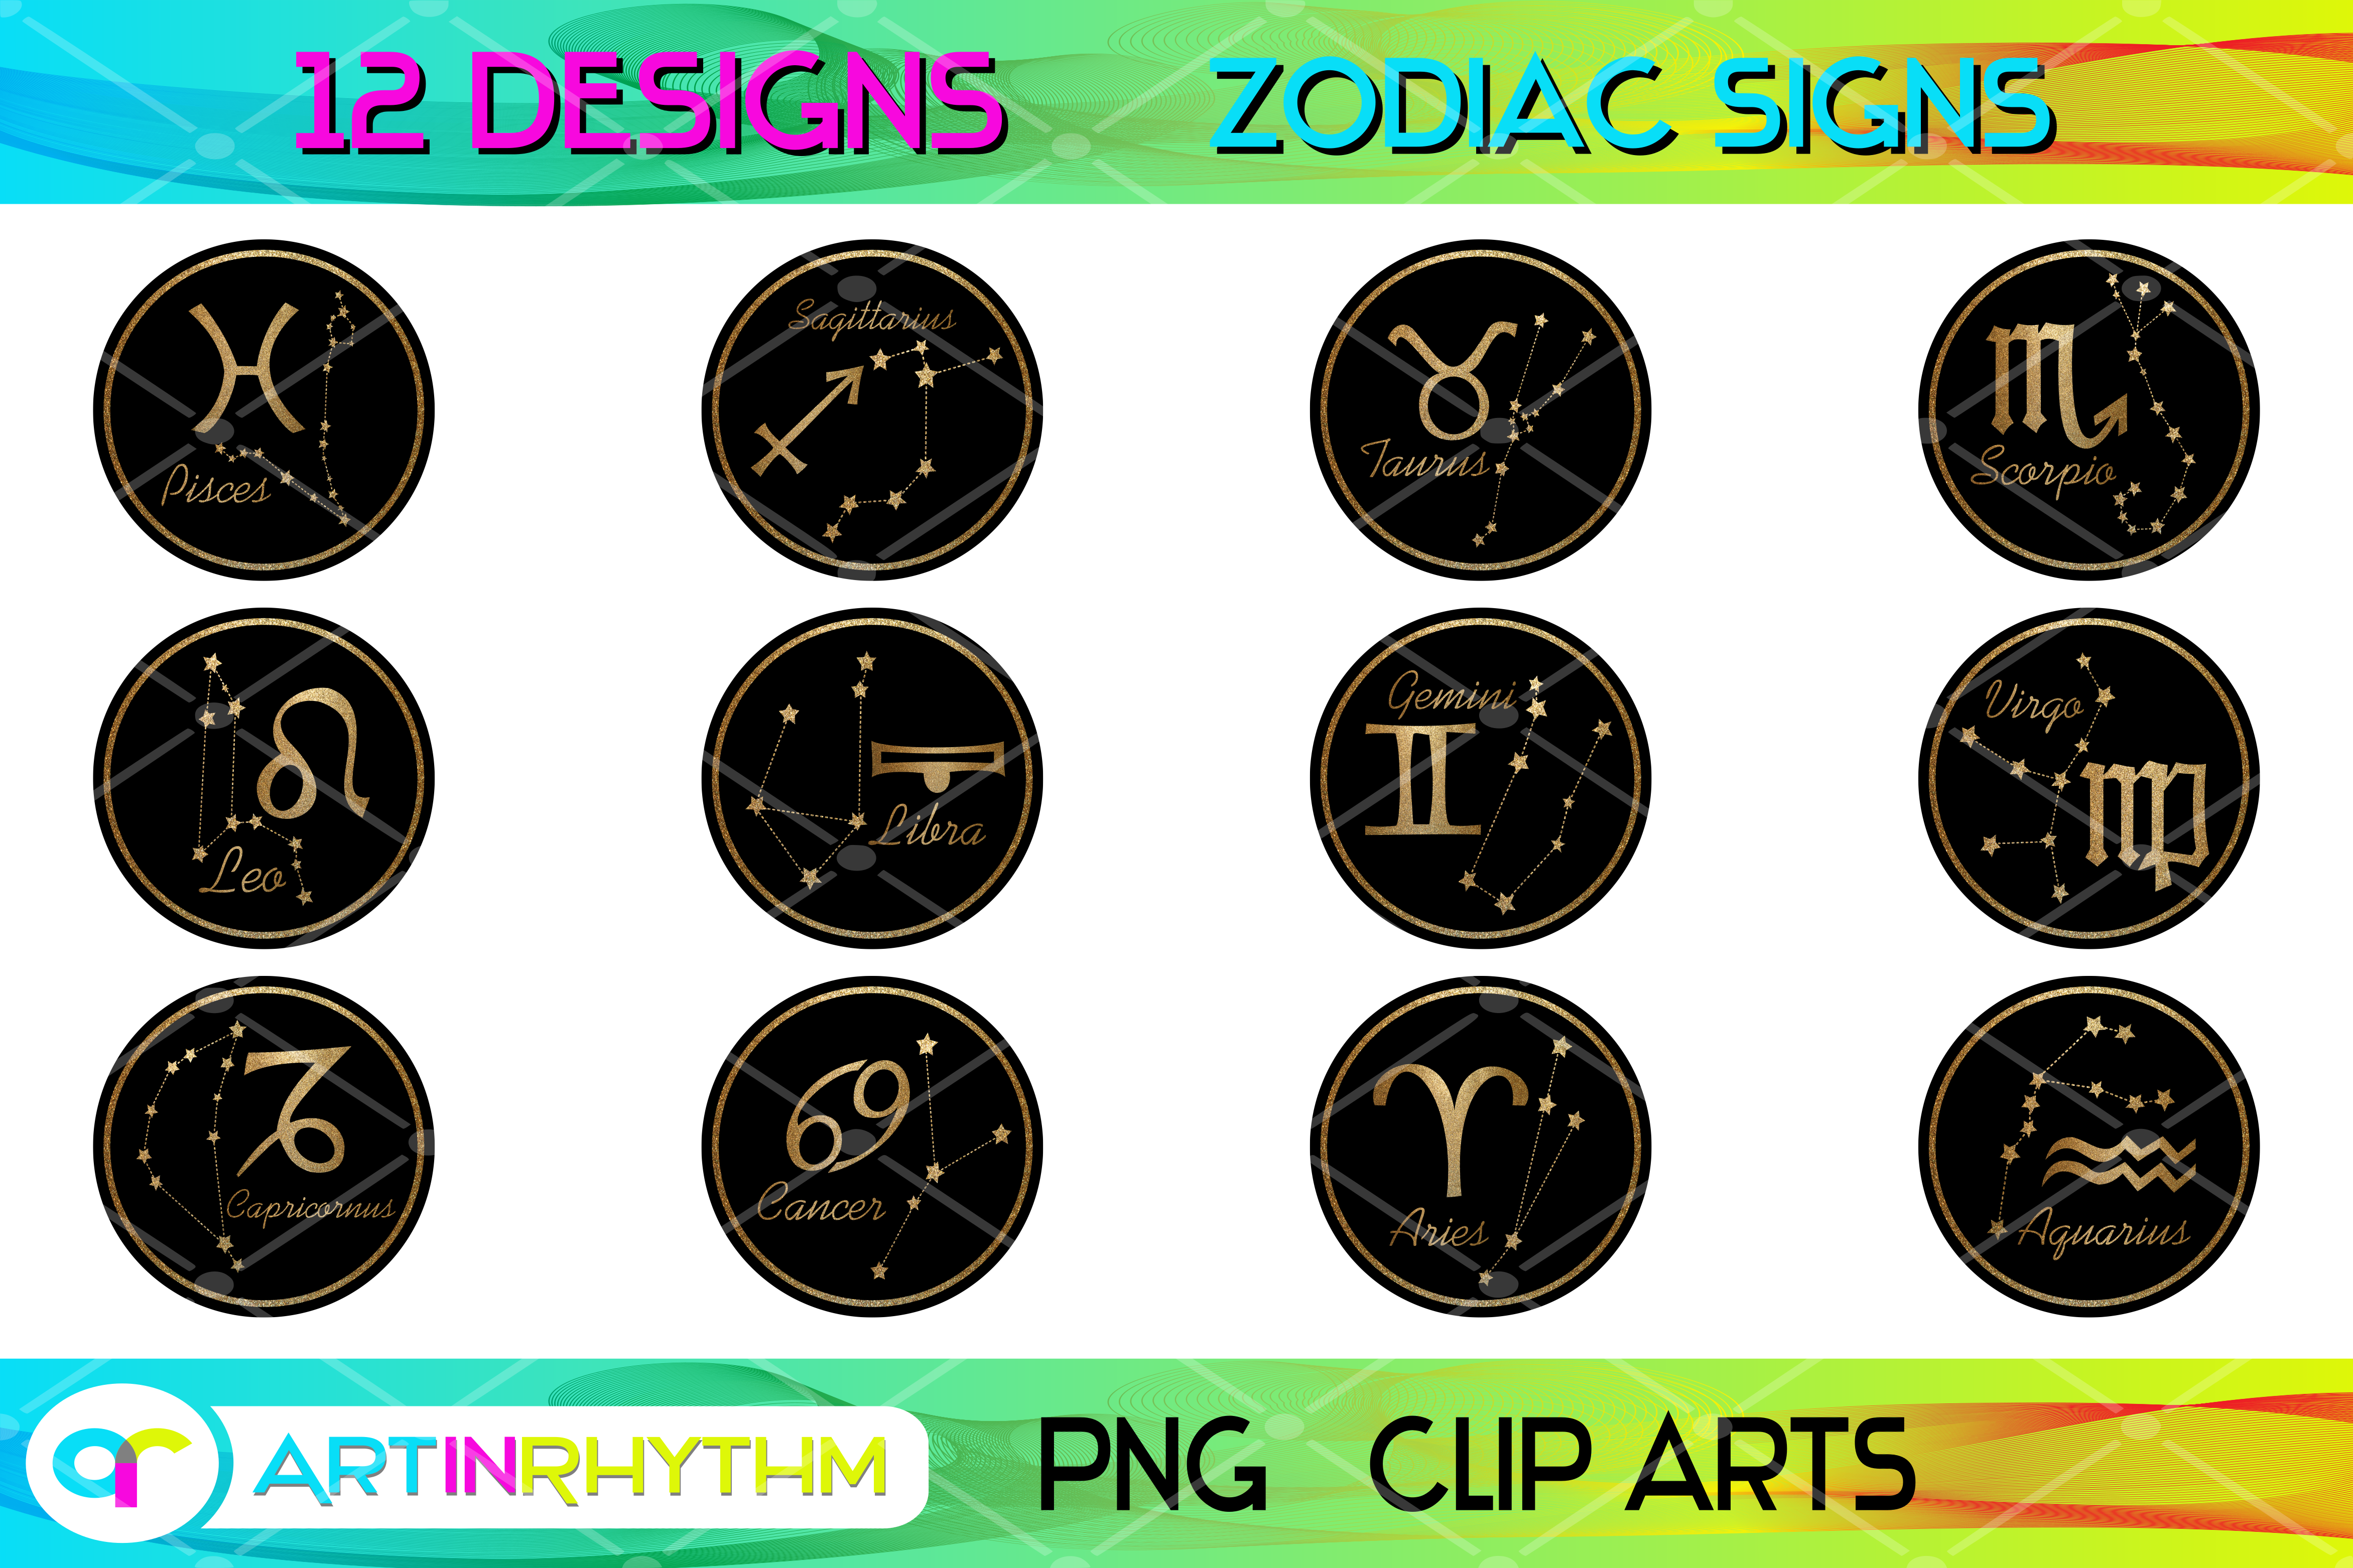 Zodiac Signs Collection - Black and Gold SVG File